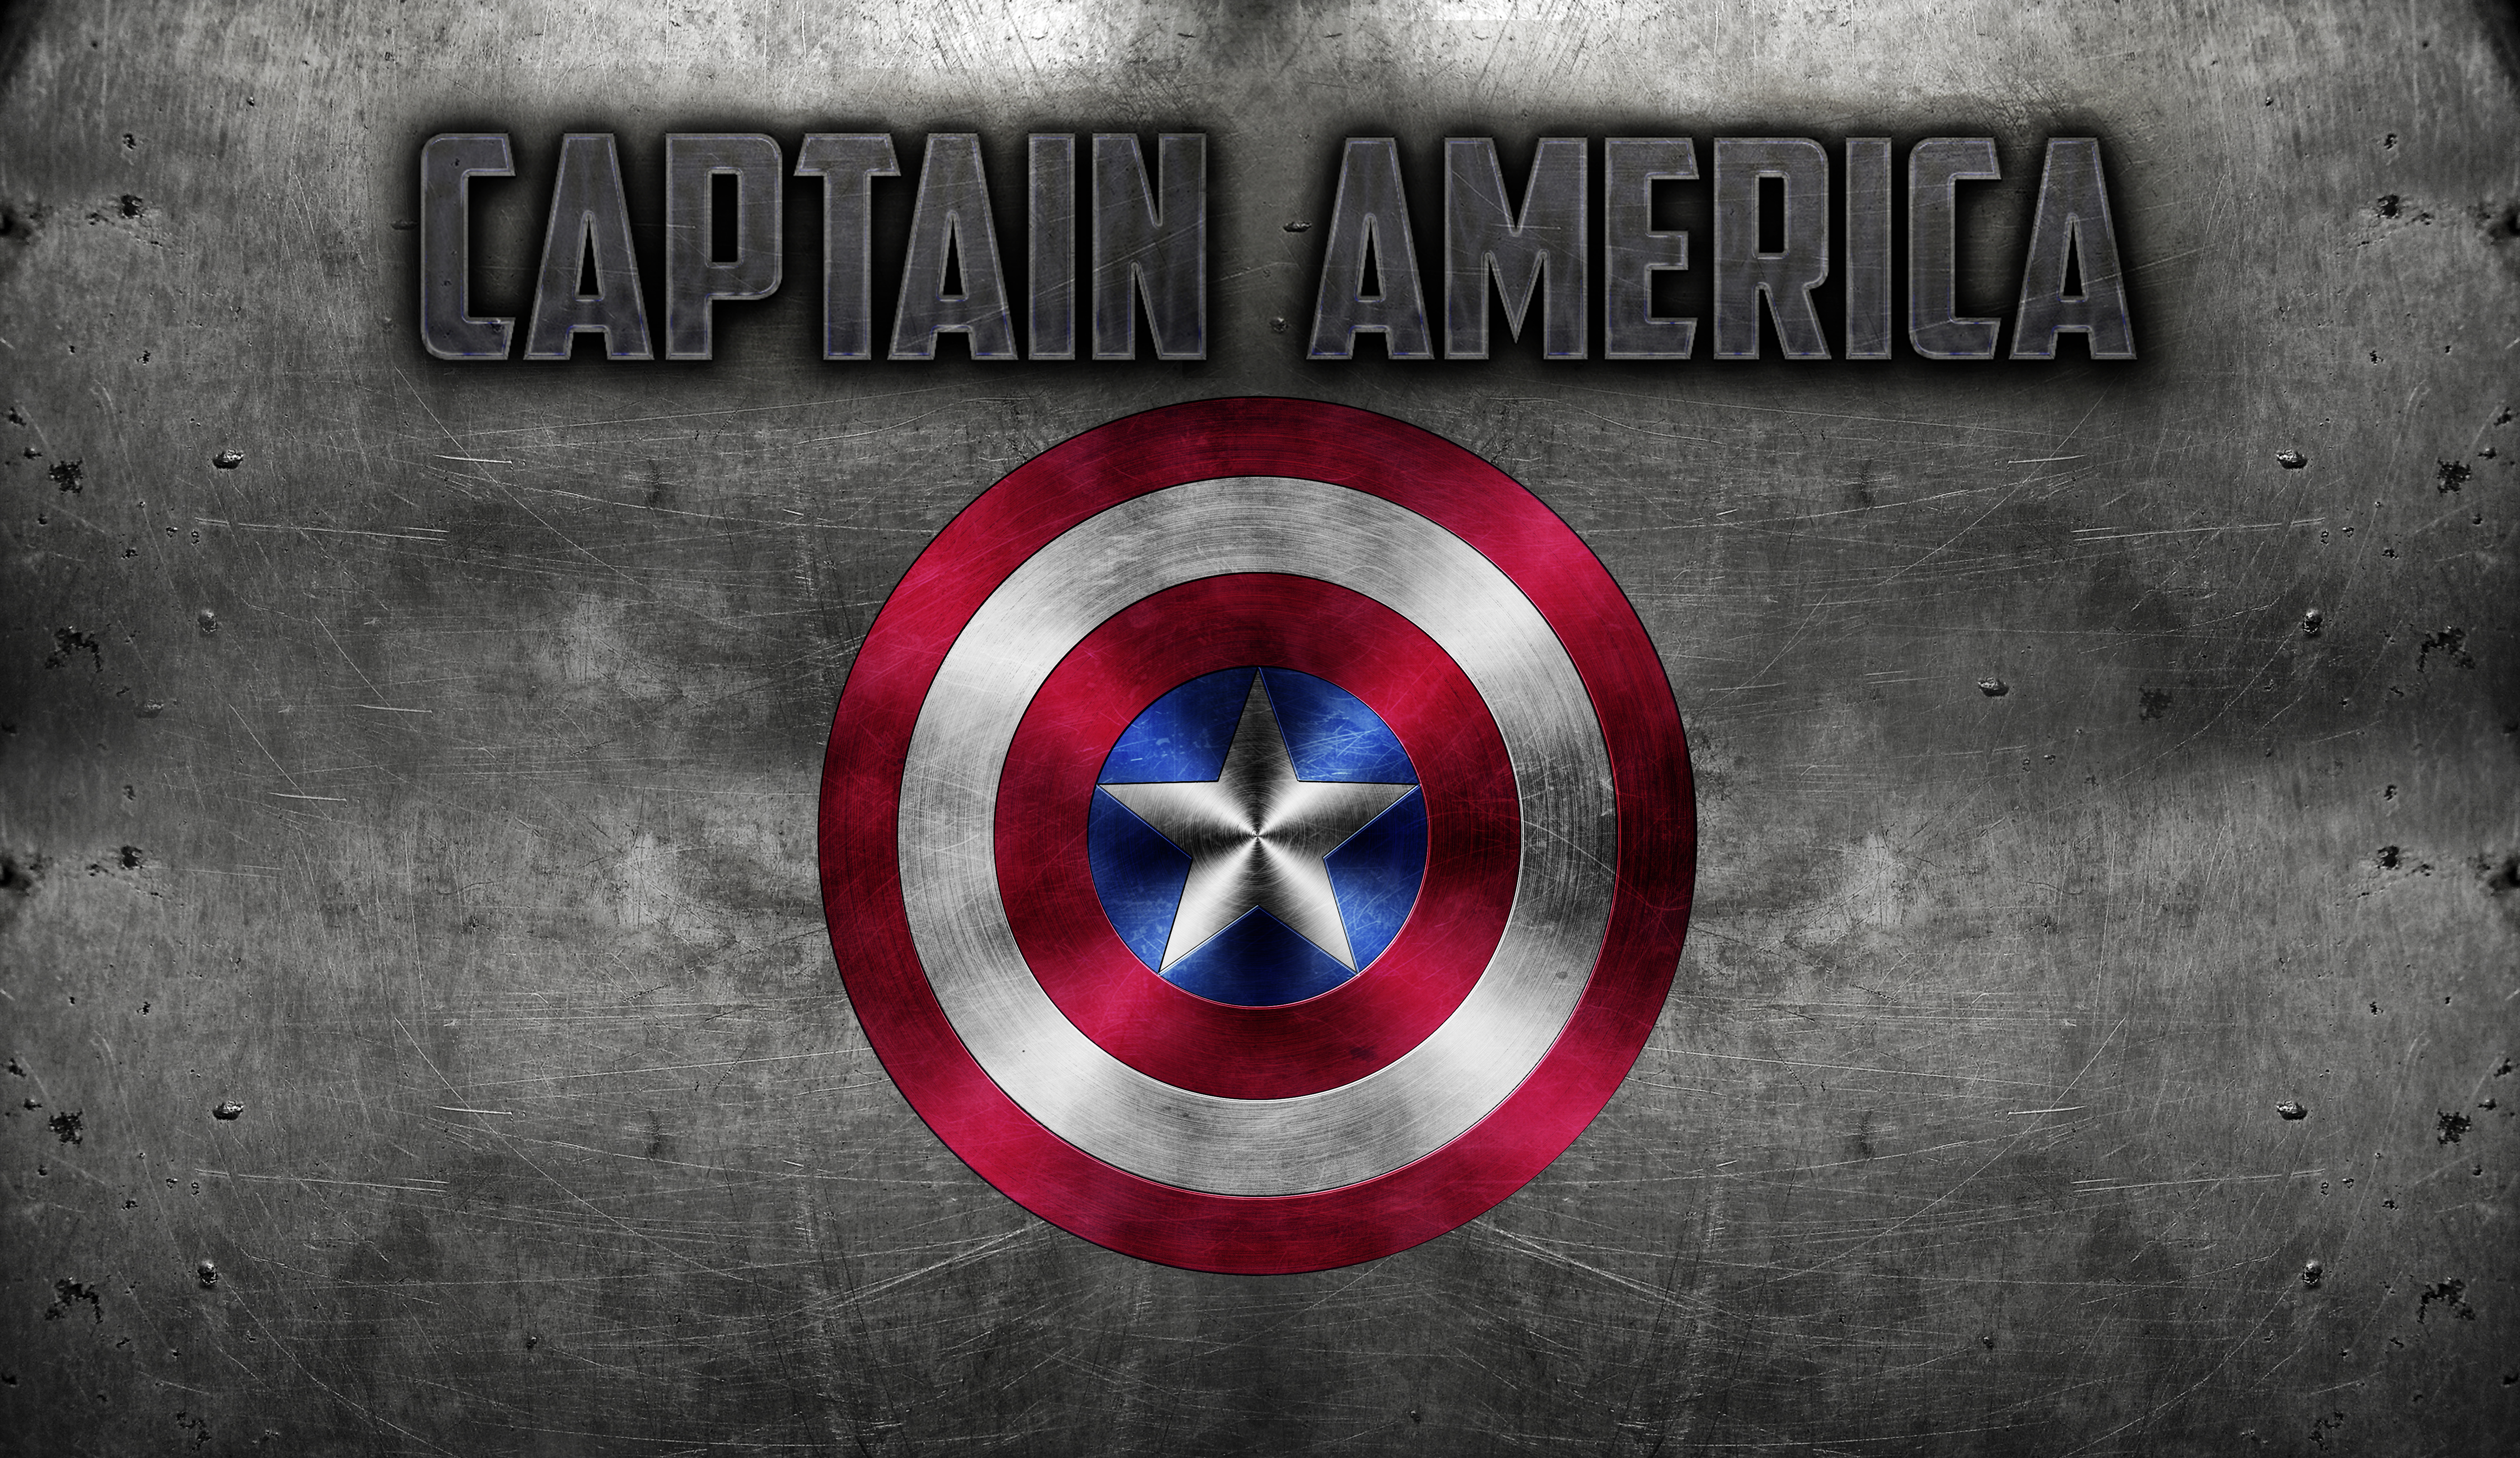 art drawing painting photoshop captain america s shield wallpaper hd 7398x4279